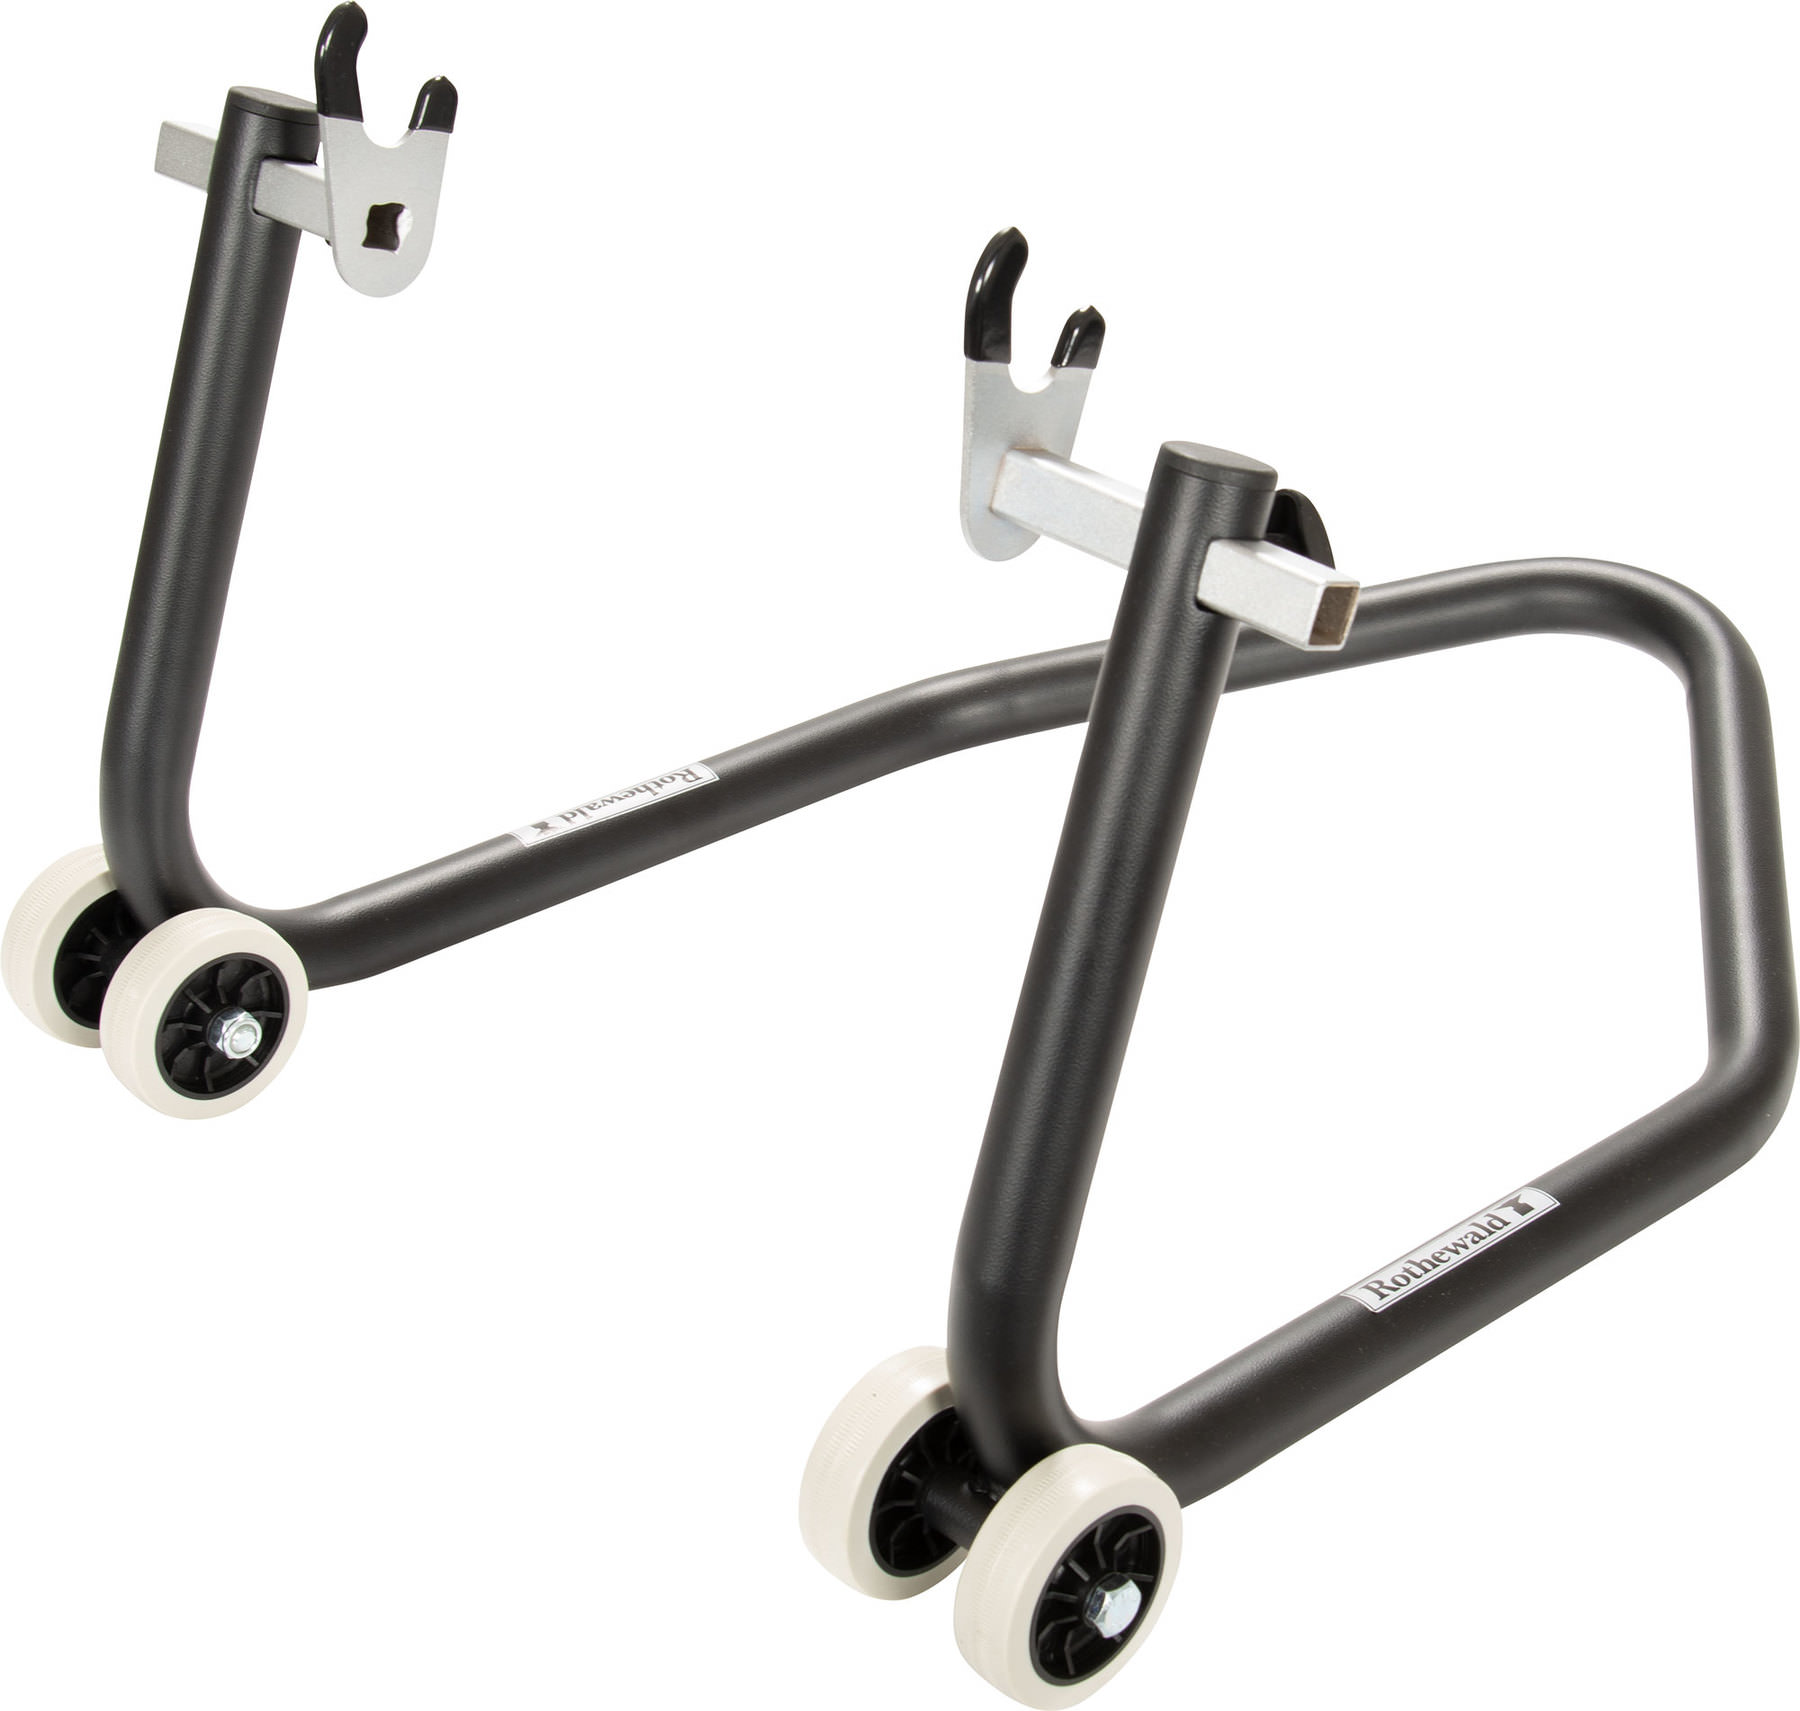 Buy Rothewald Paddock Stand V Adapter Bobbin Louis Motorcycle Clothing And Technology